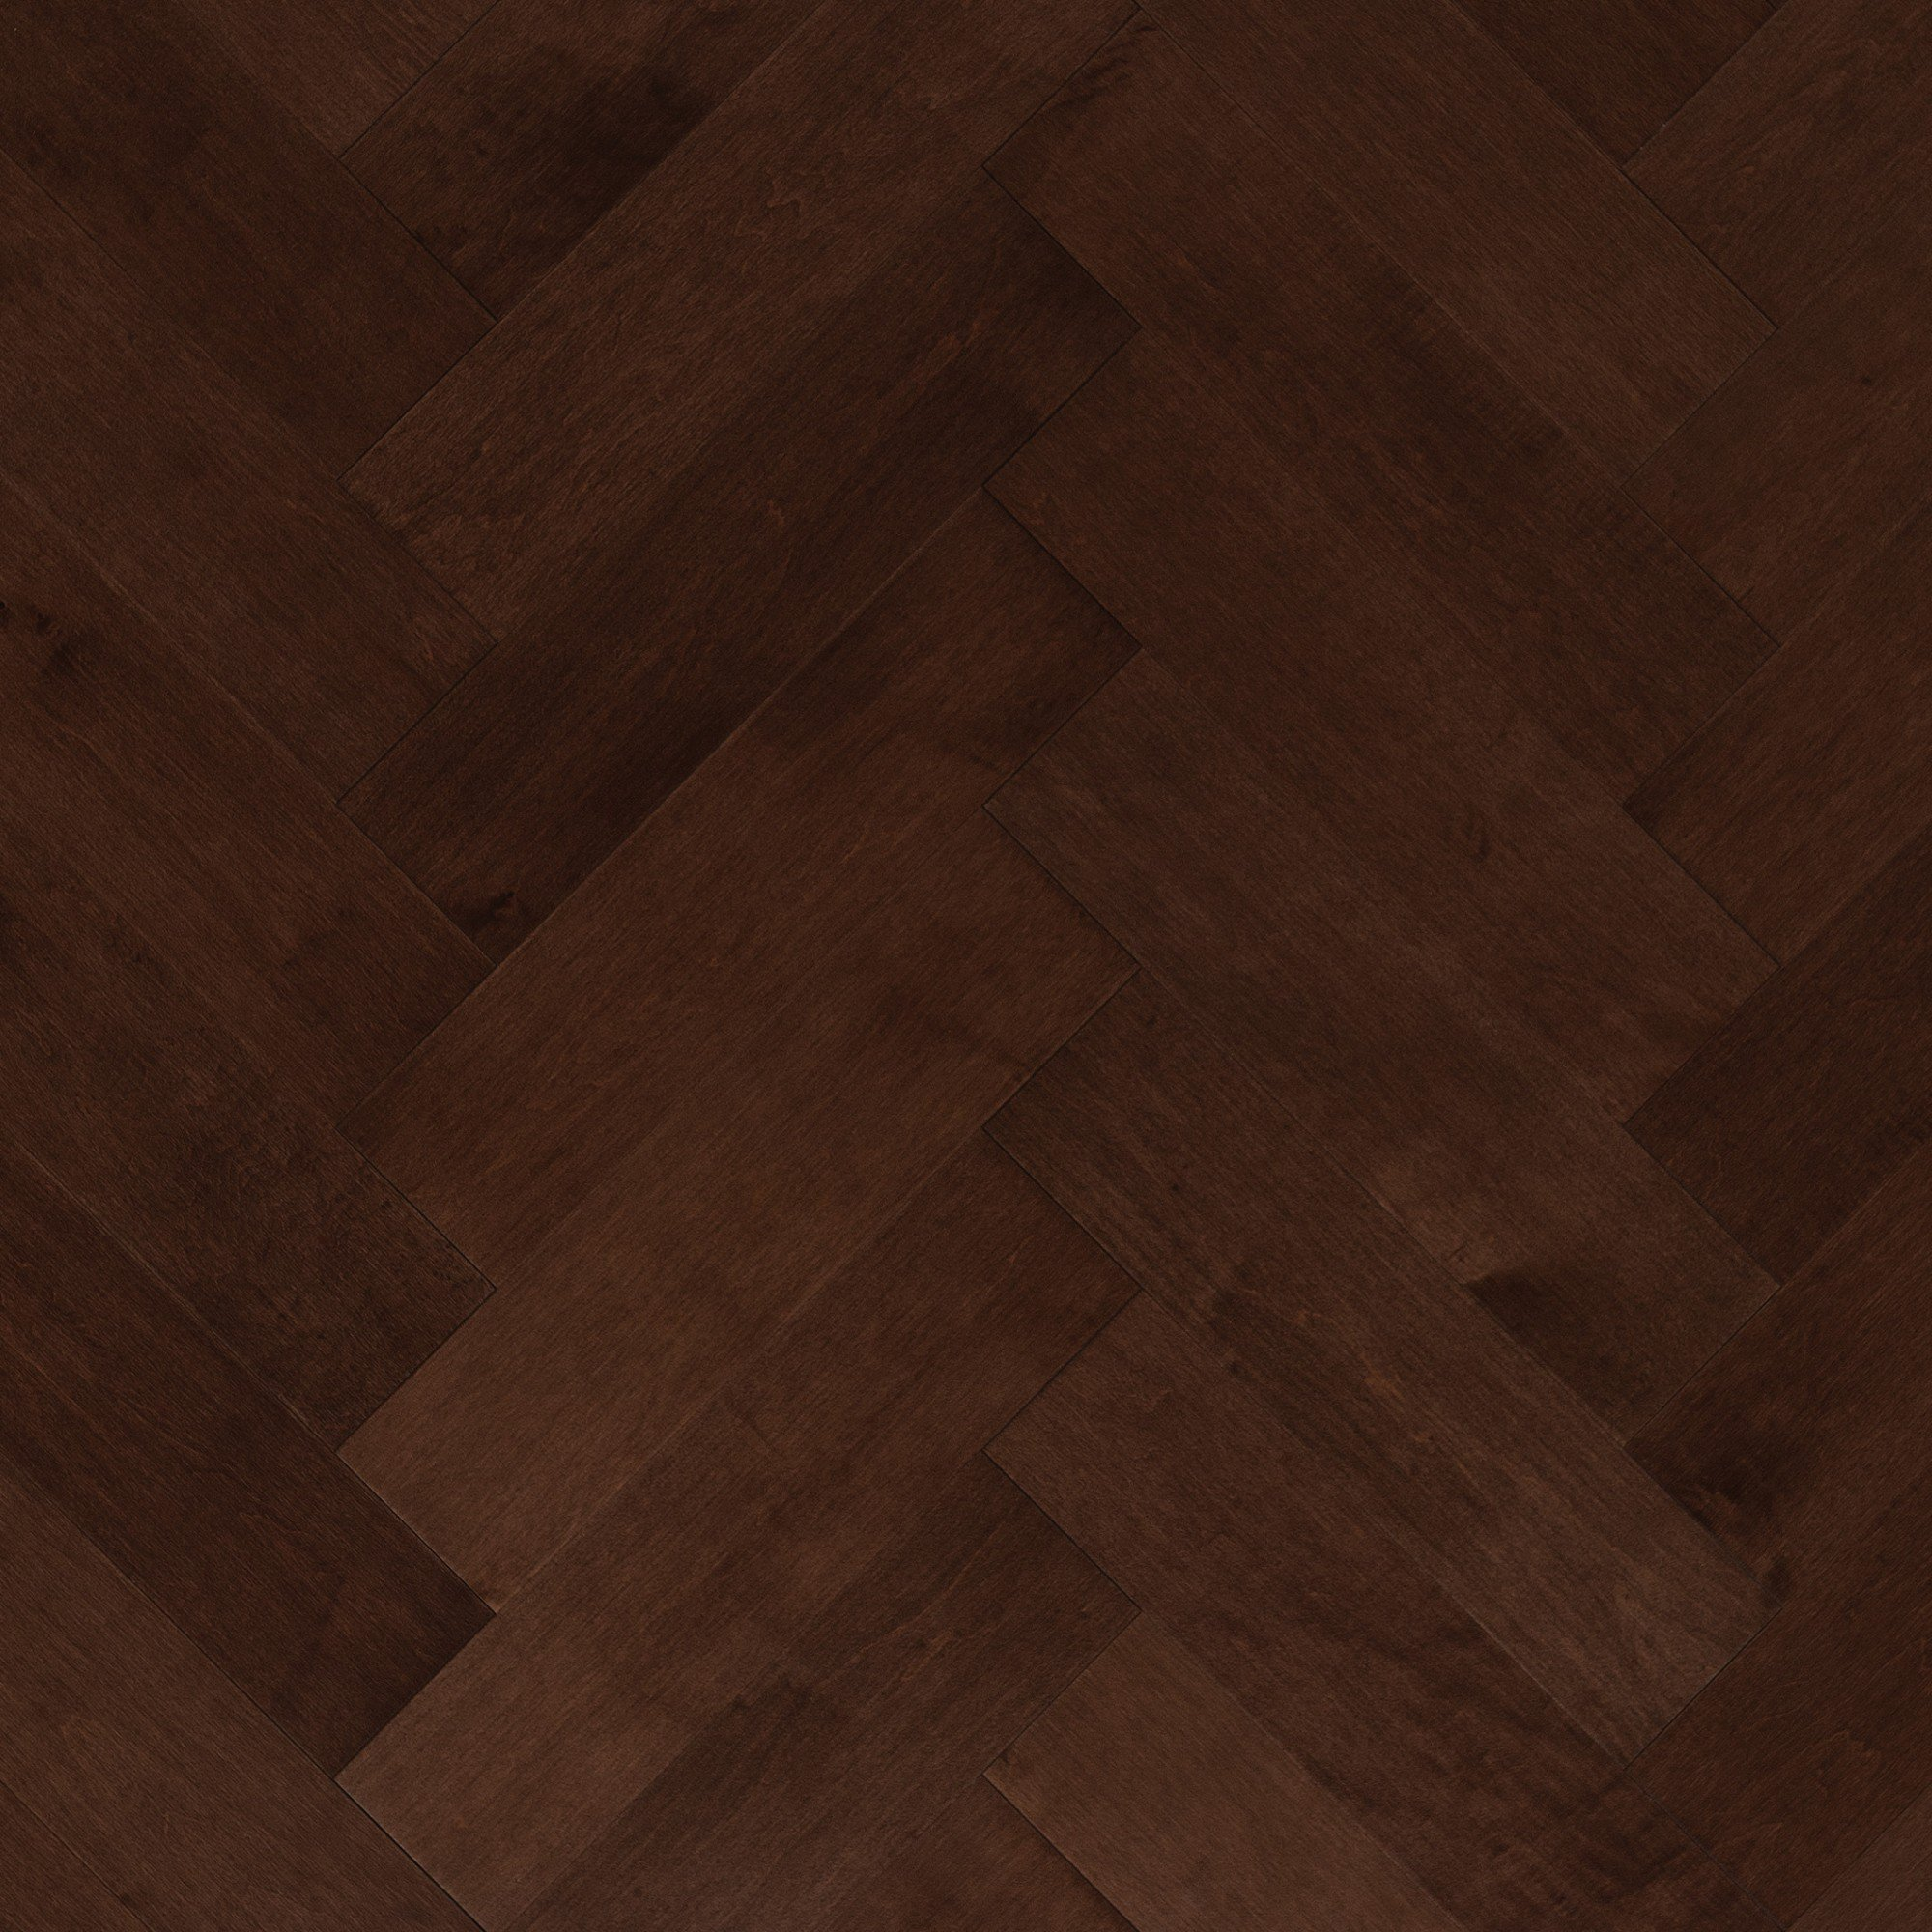 Maple Vienna Exclusive Smooth - Floor image